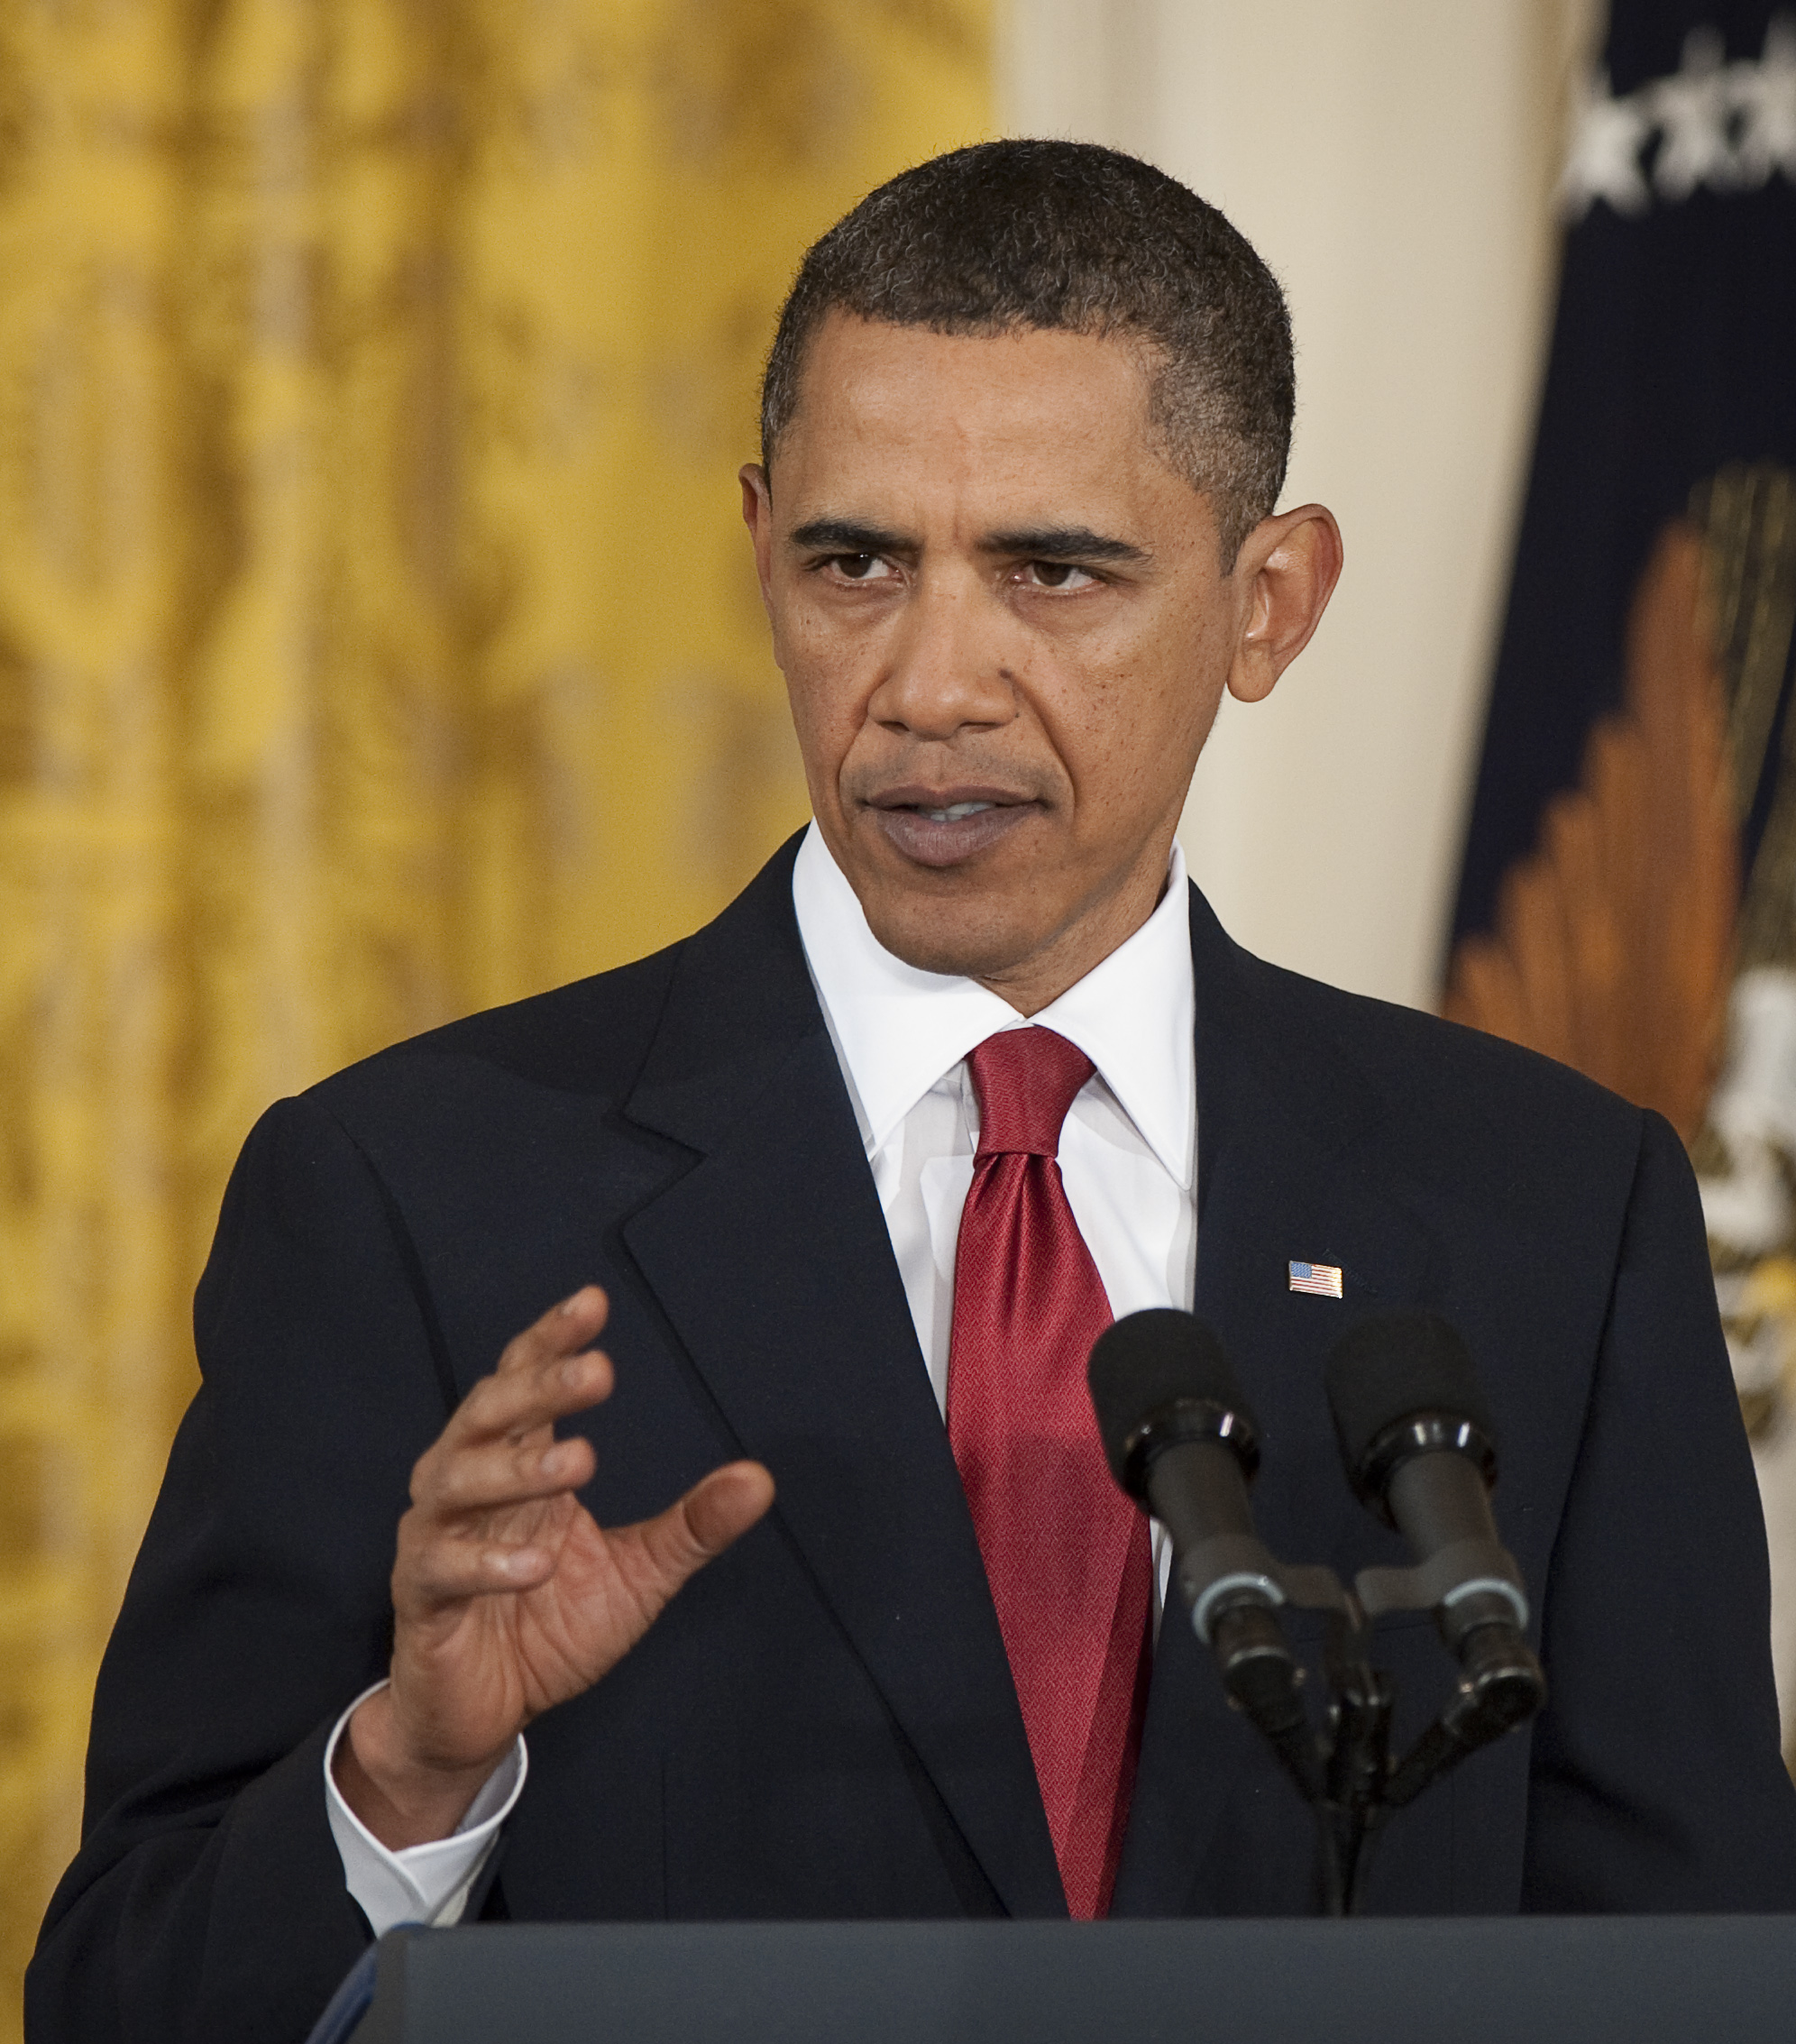 President Obama: NASA Supports The President's Educate To Innovate